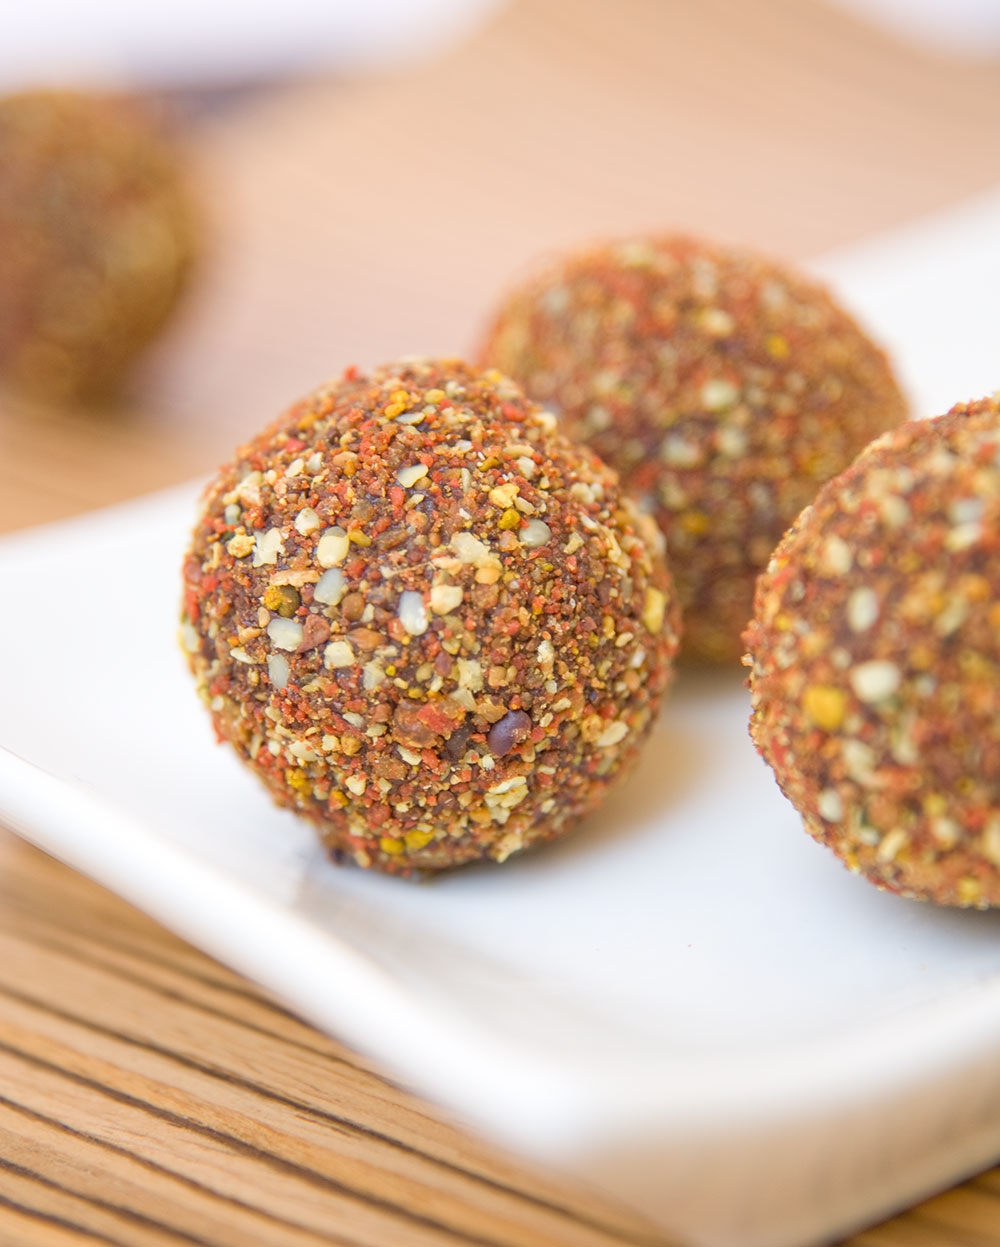 Our Medicine Balls | Superfood Infused Chocolate Bliss!